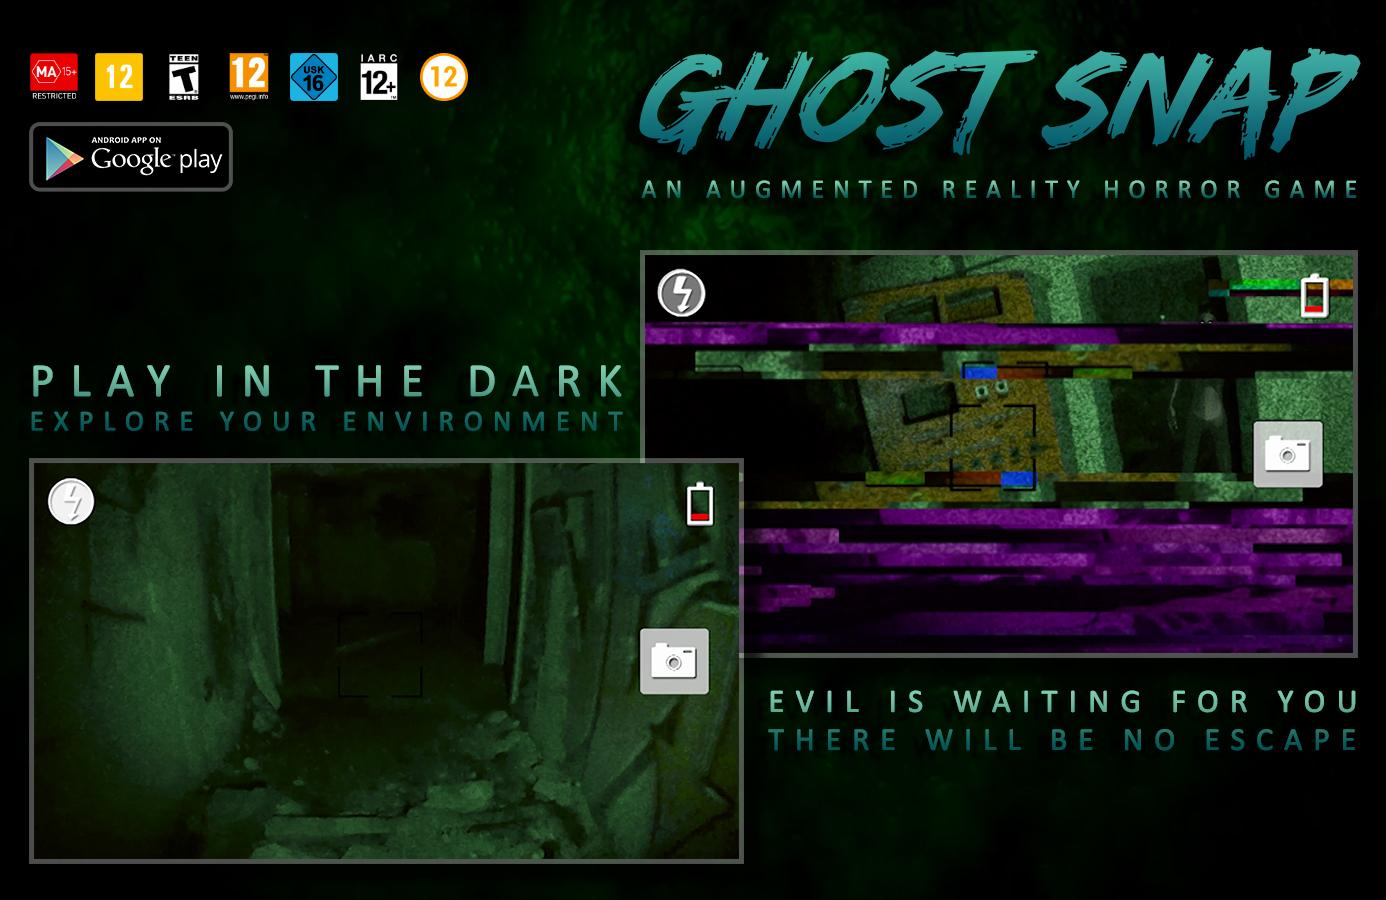 Ghost Snap AR Horror Survival 1 2 3 1 APK Download - Android